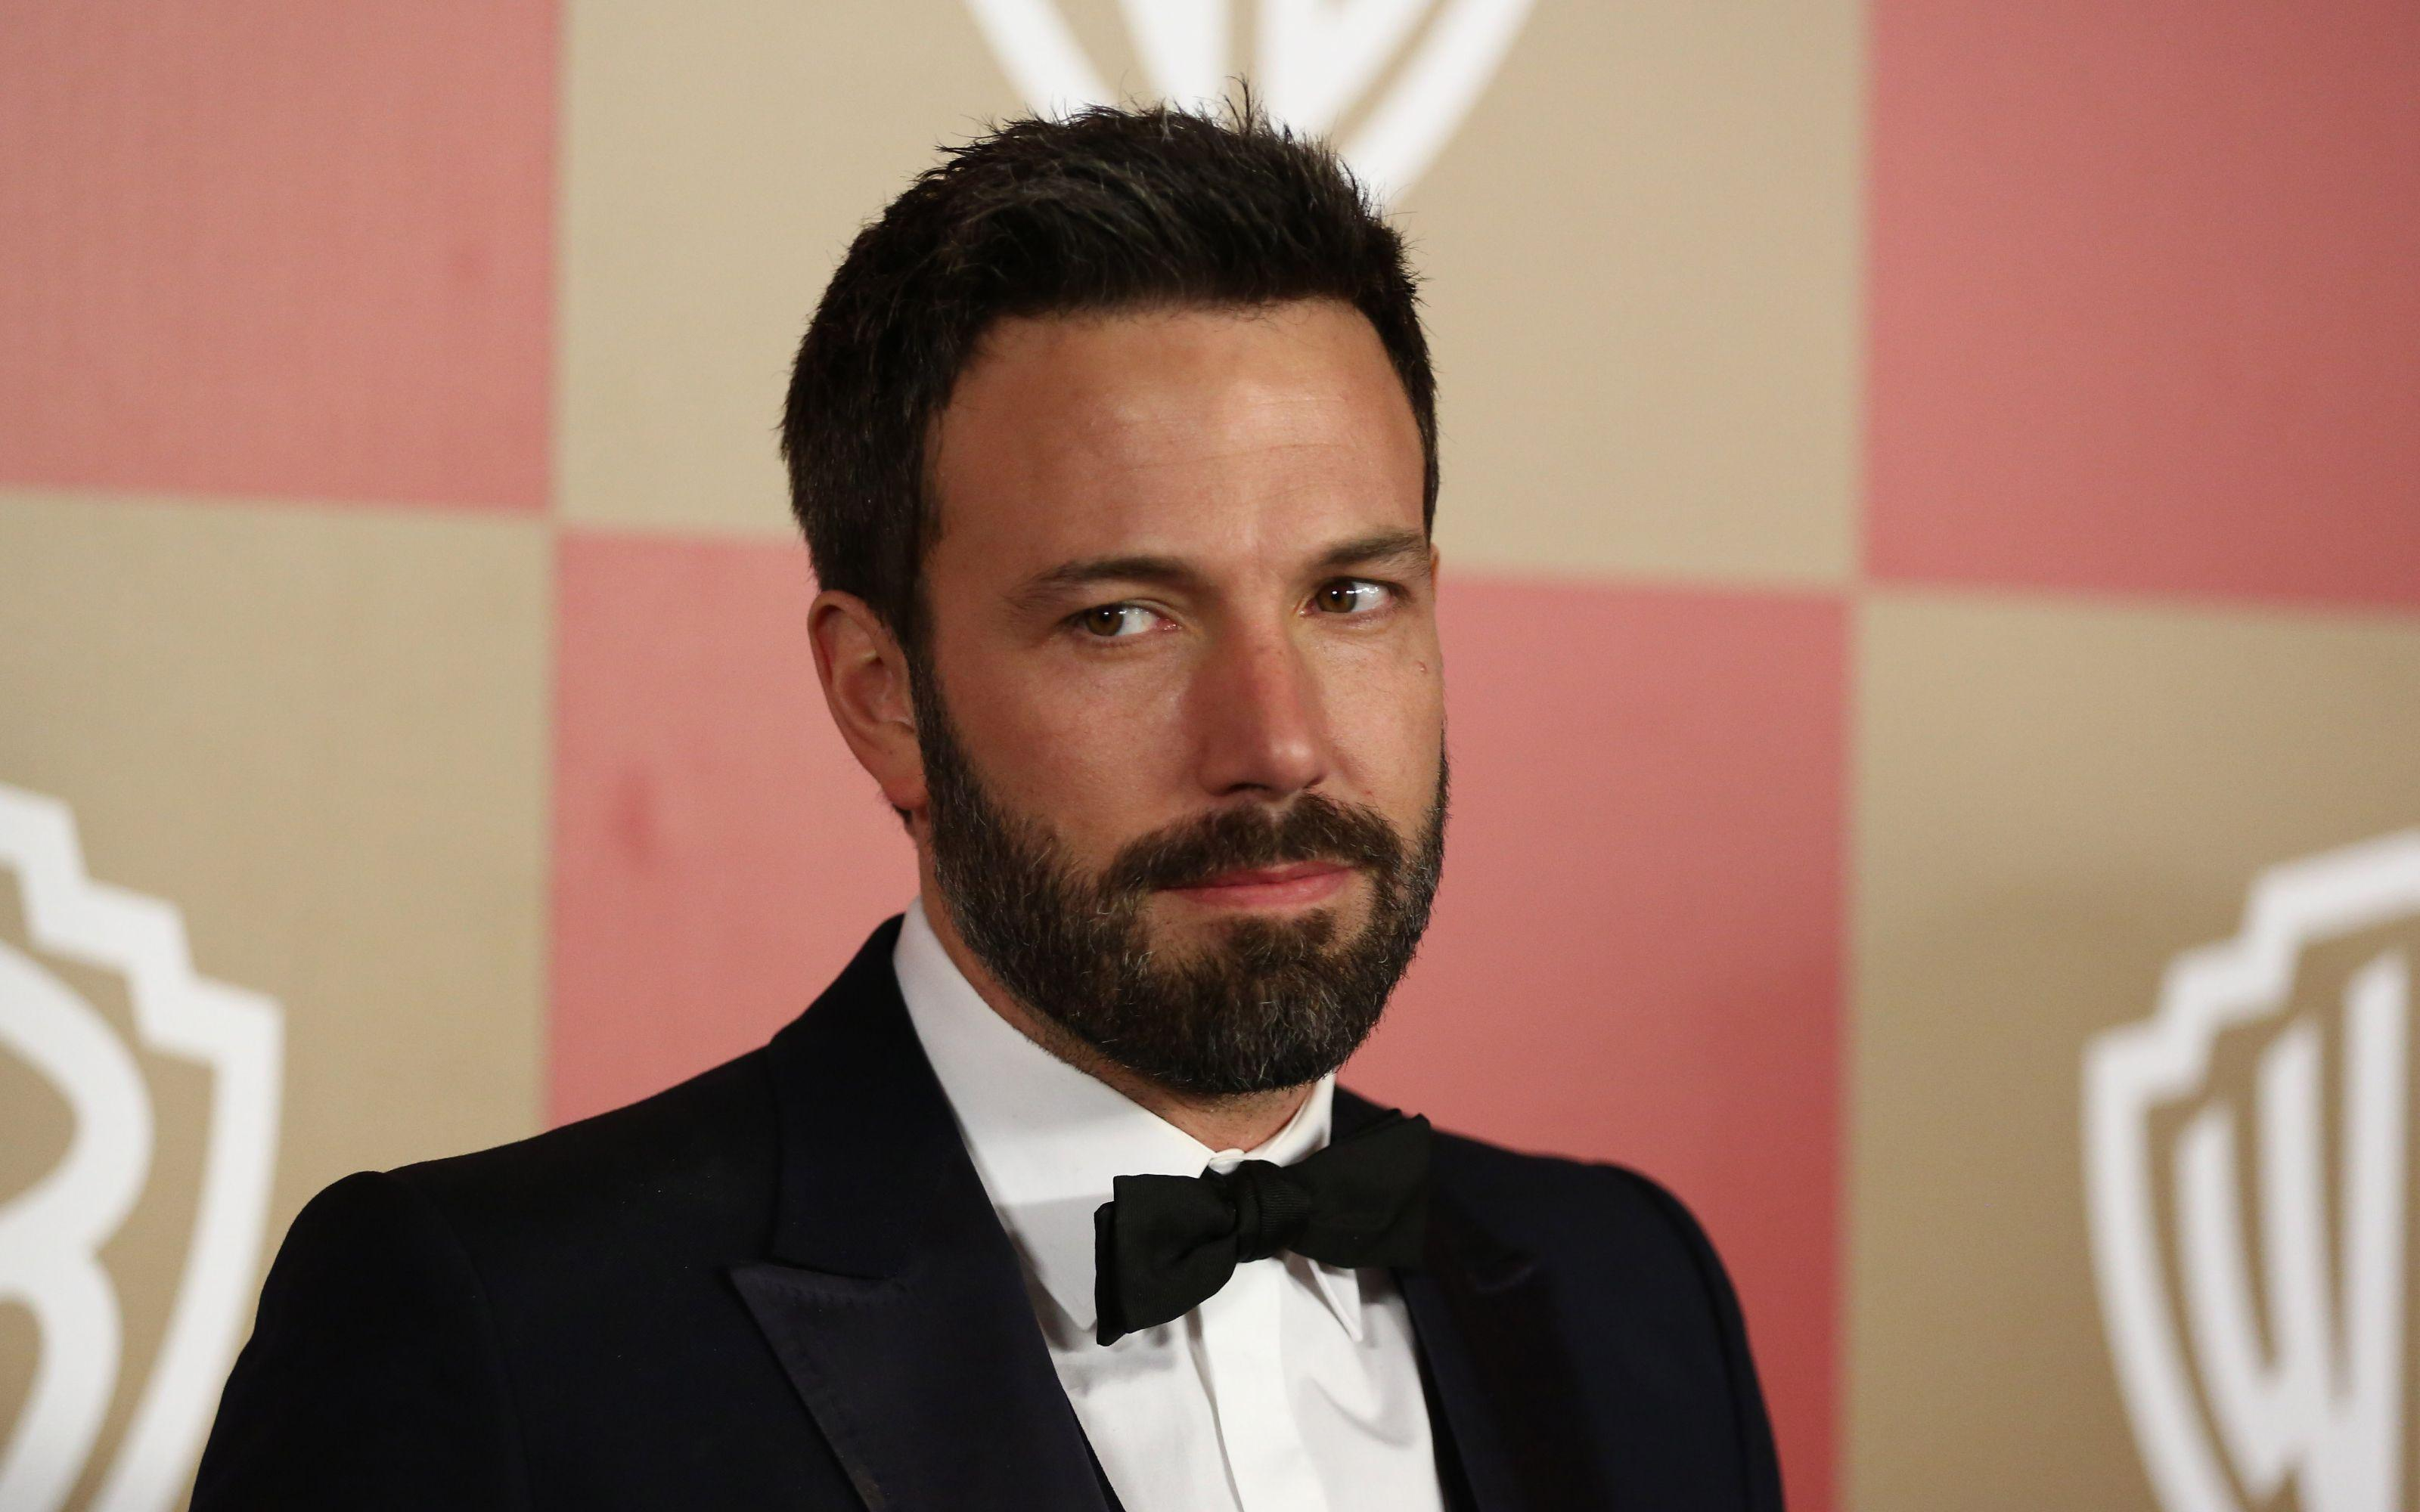 Ben Affleck Wallpapers, Pictures, Image